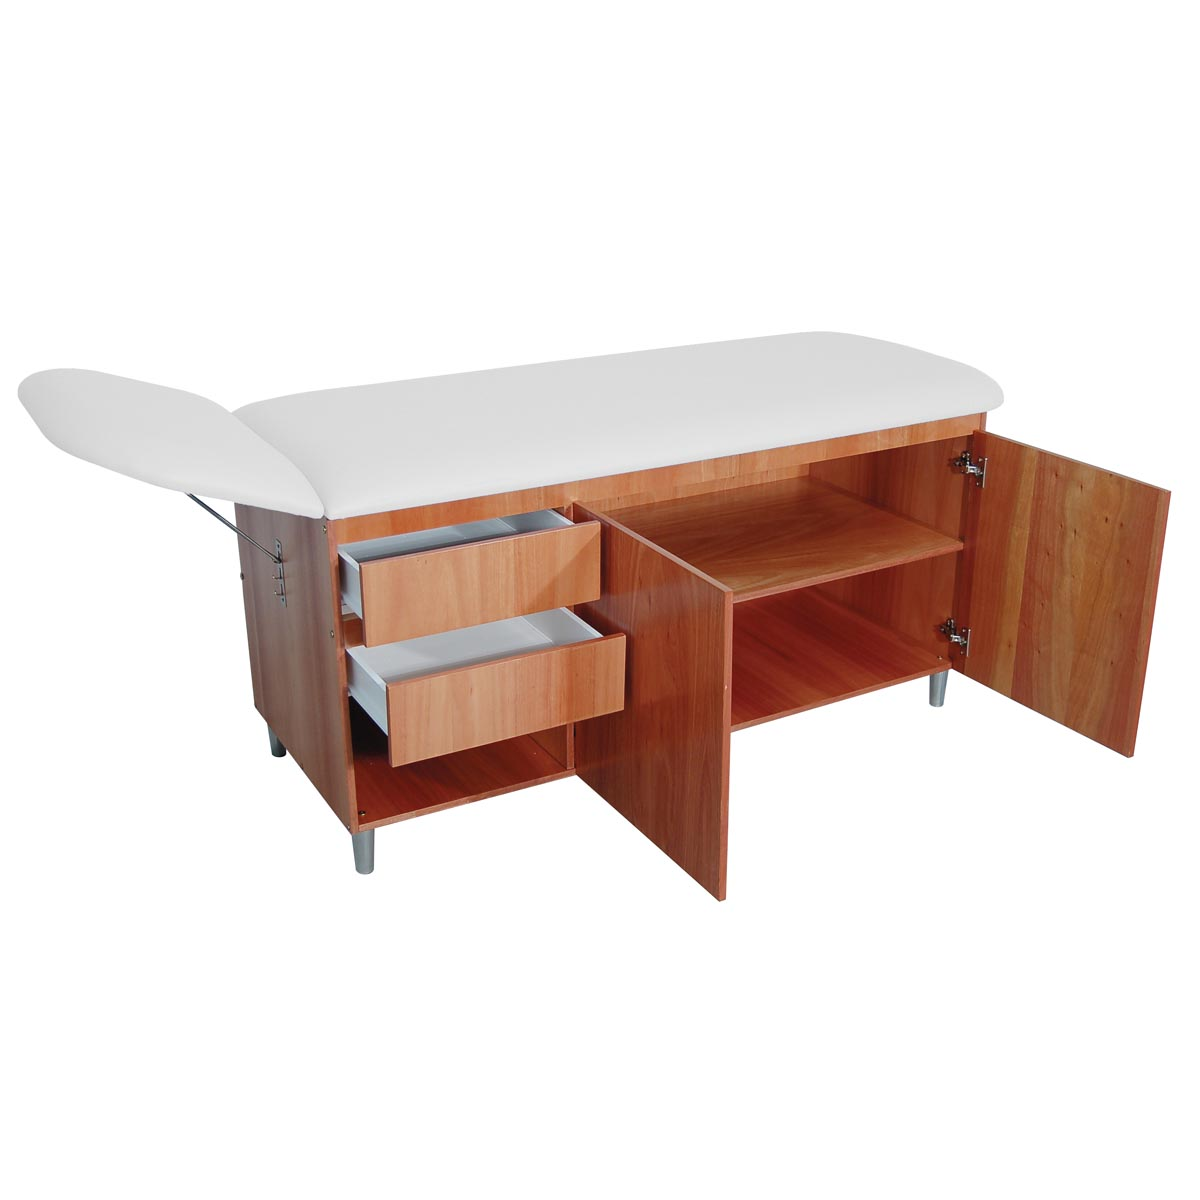 Classic straight line table with drawers treatment tables for Html table lines